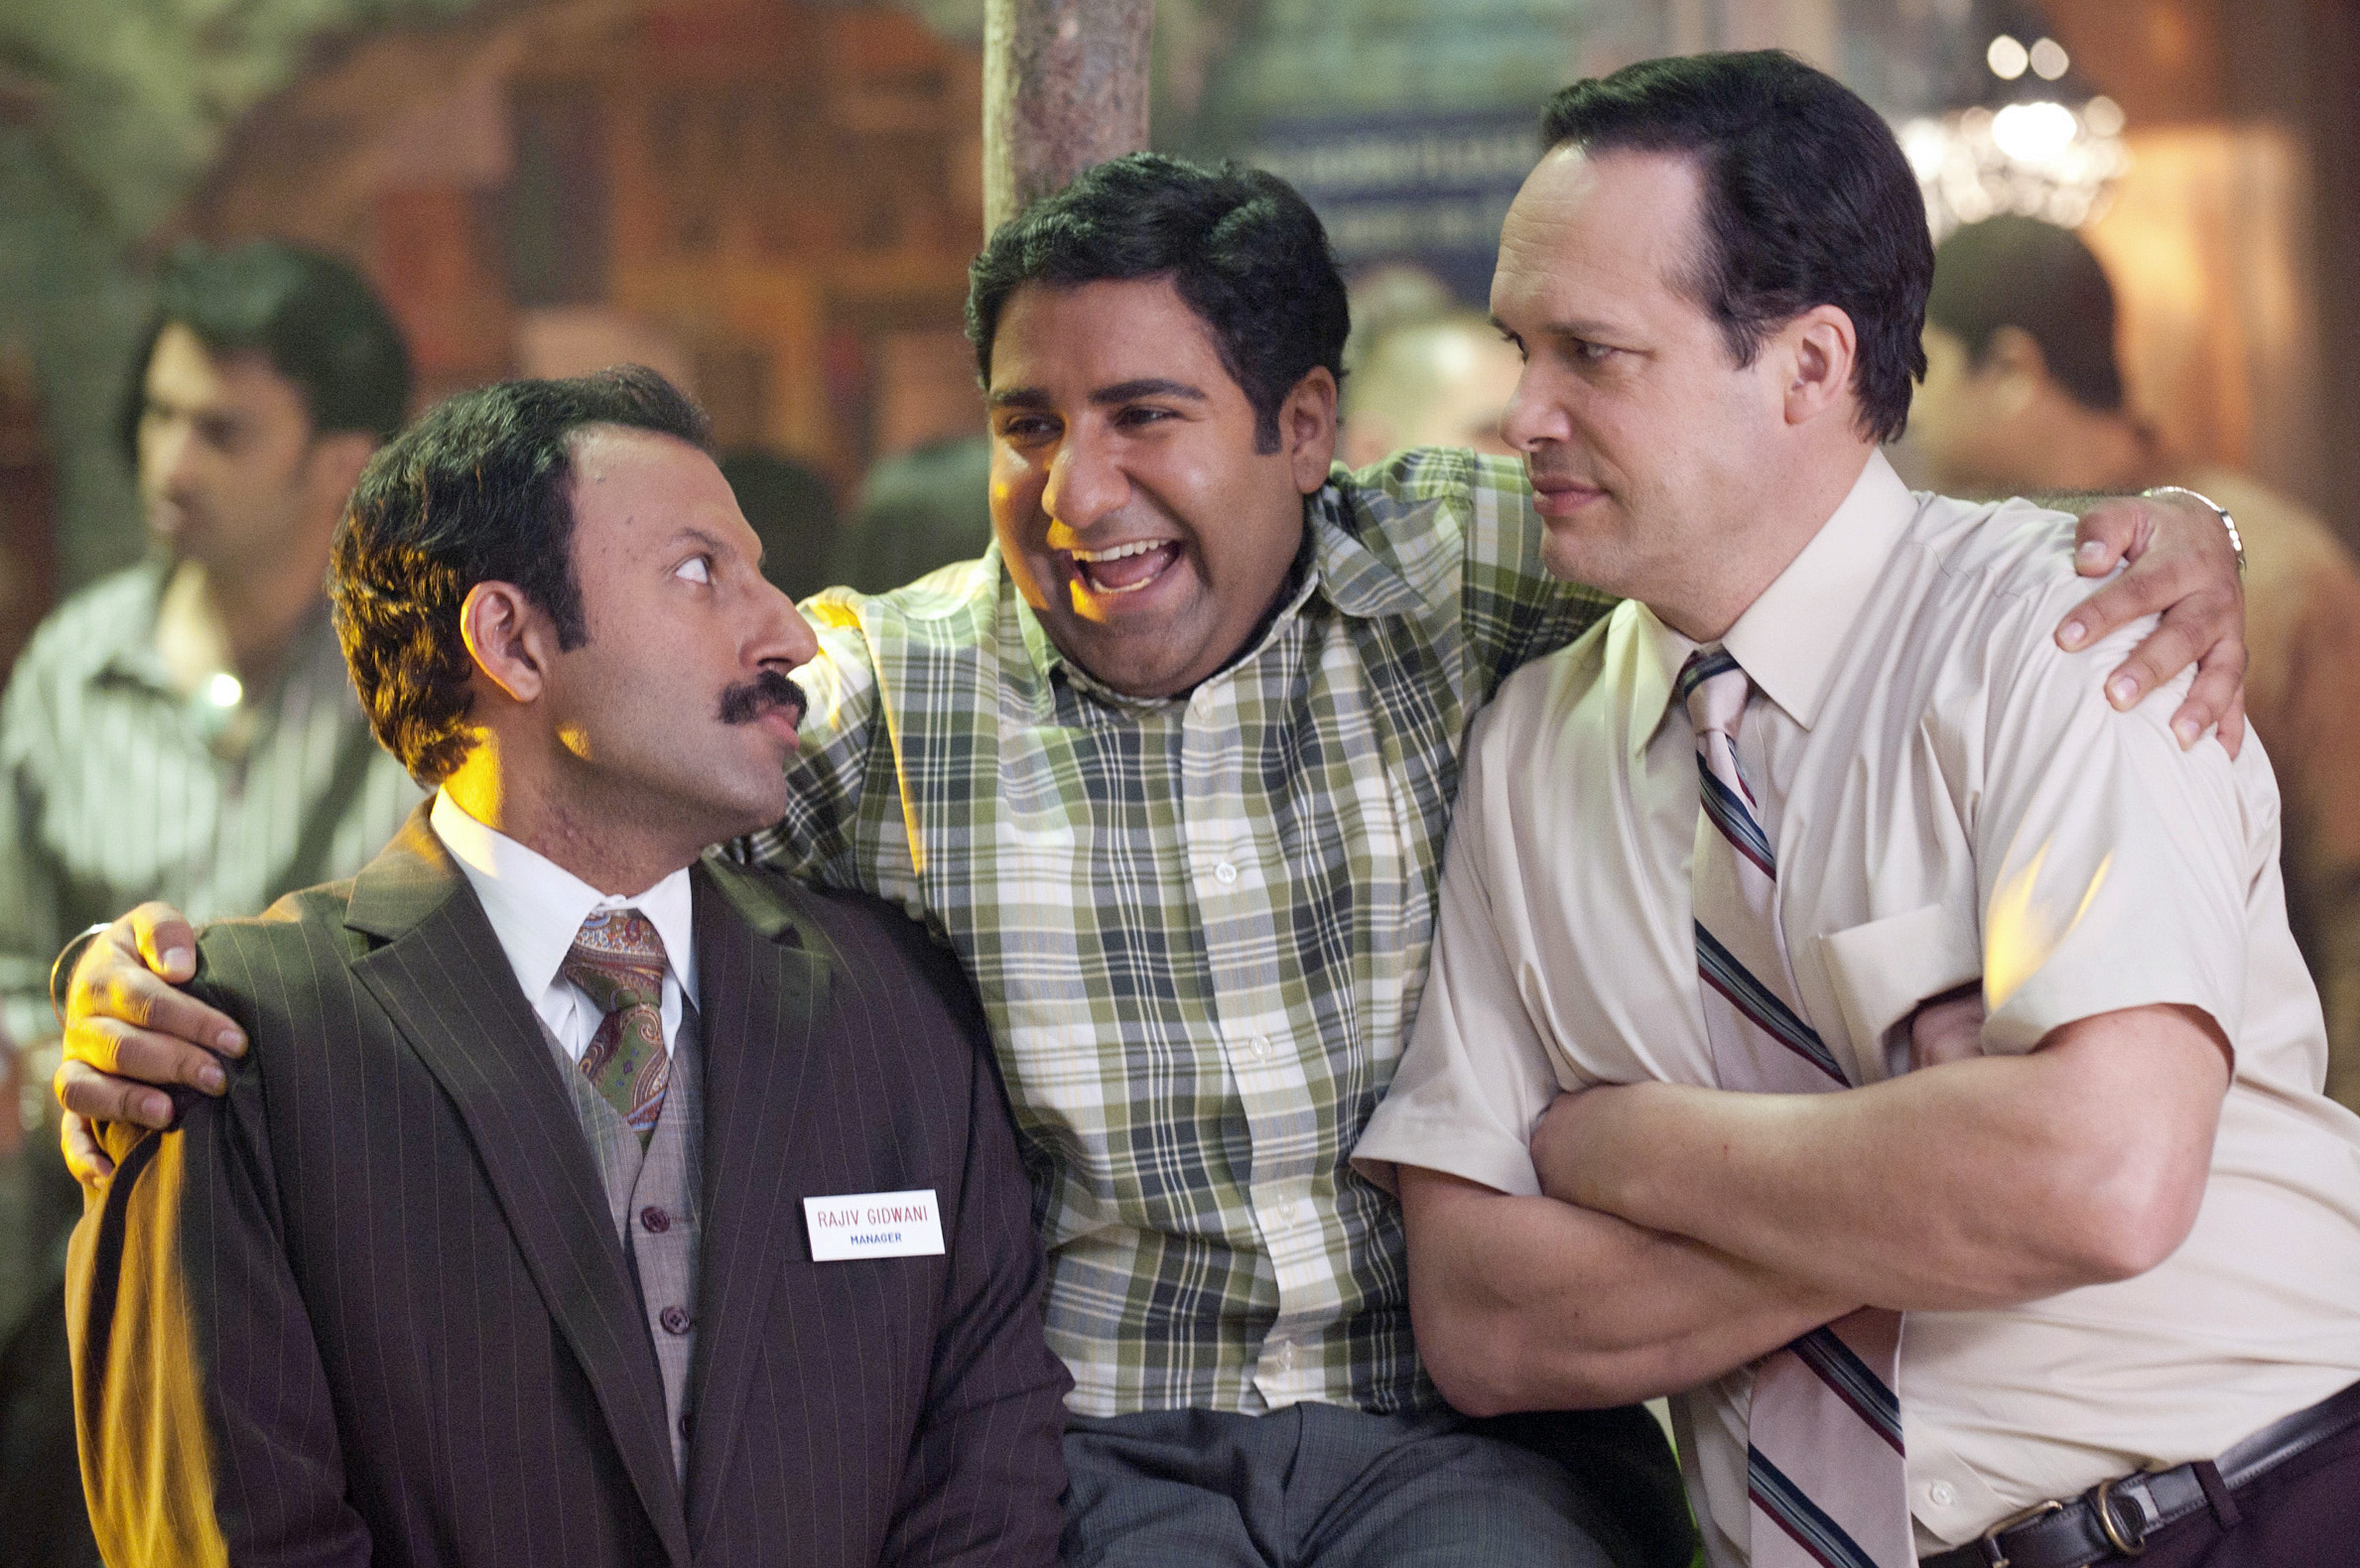 """Outsourced"" is the first American sitcom to feature a primarily South Asian cast, one of whom is Ismaili actor Rizwan Manji. Photo: Chris Haston/NBC"